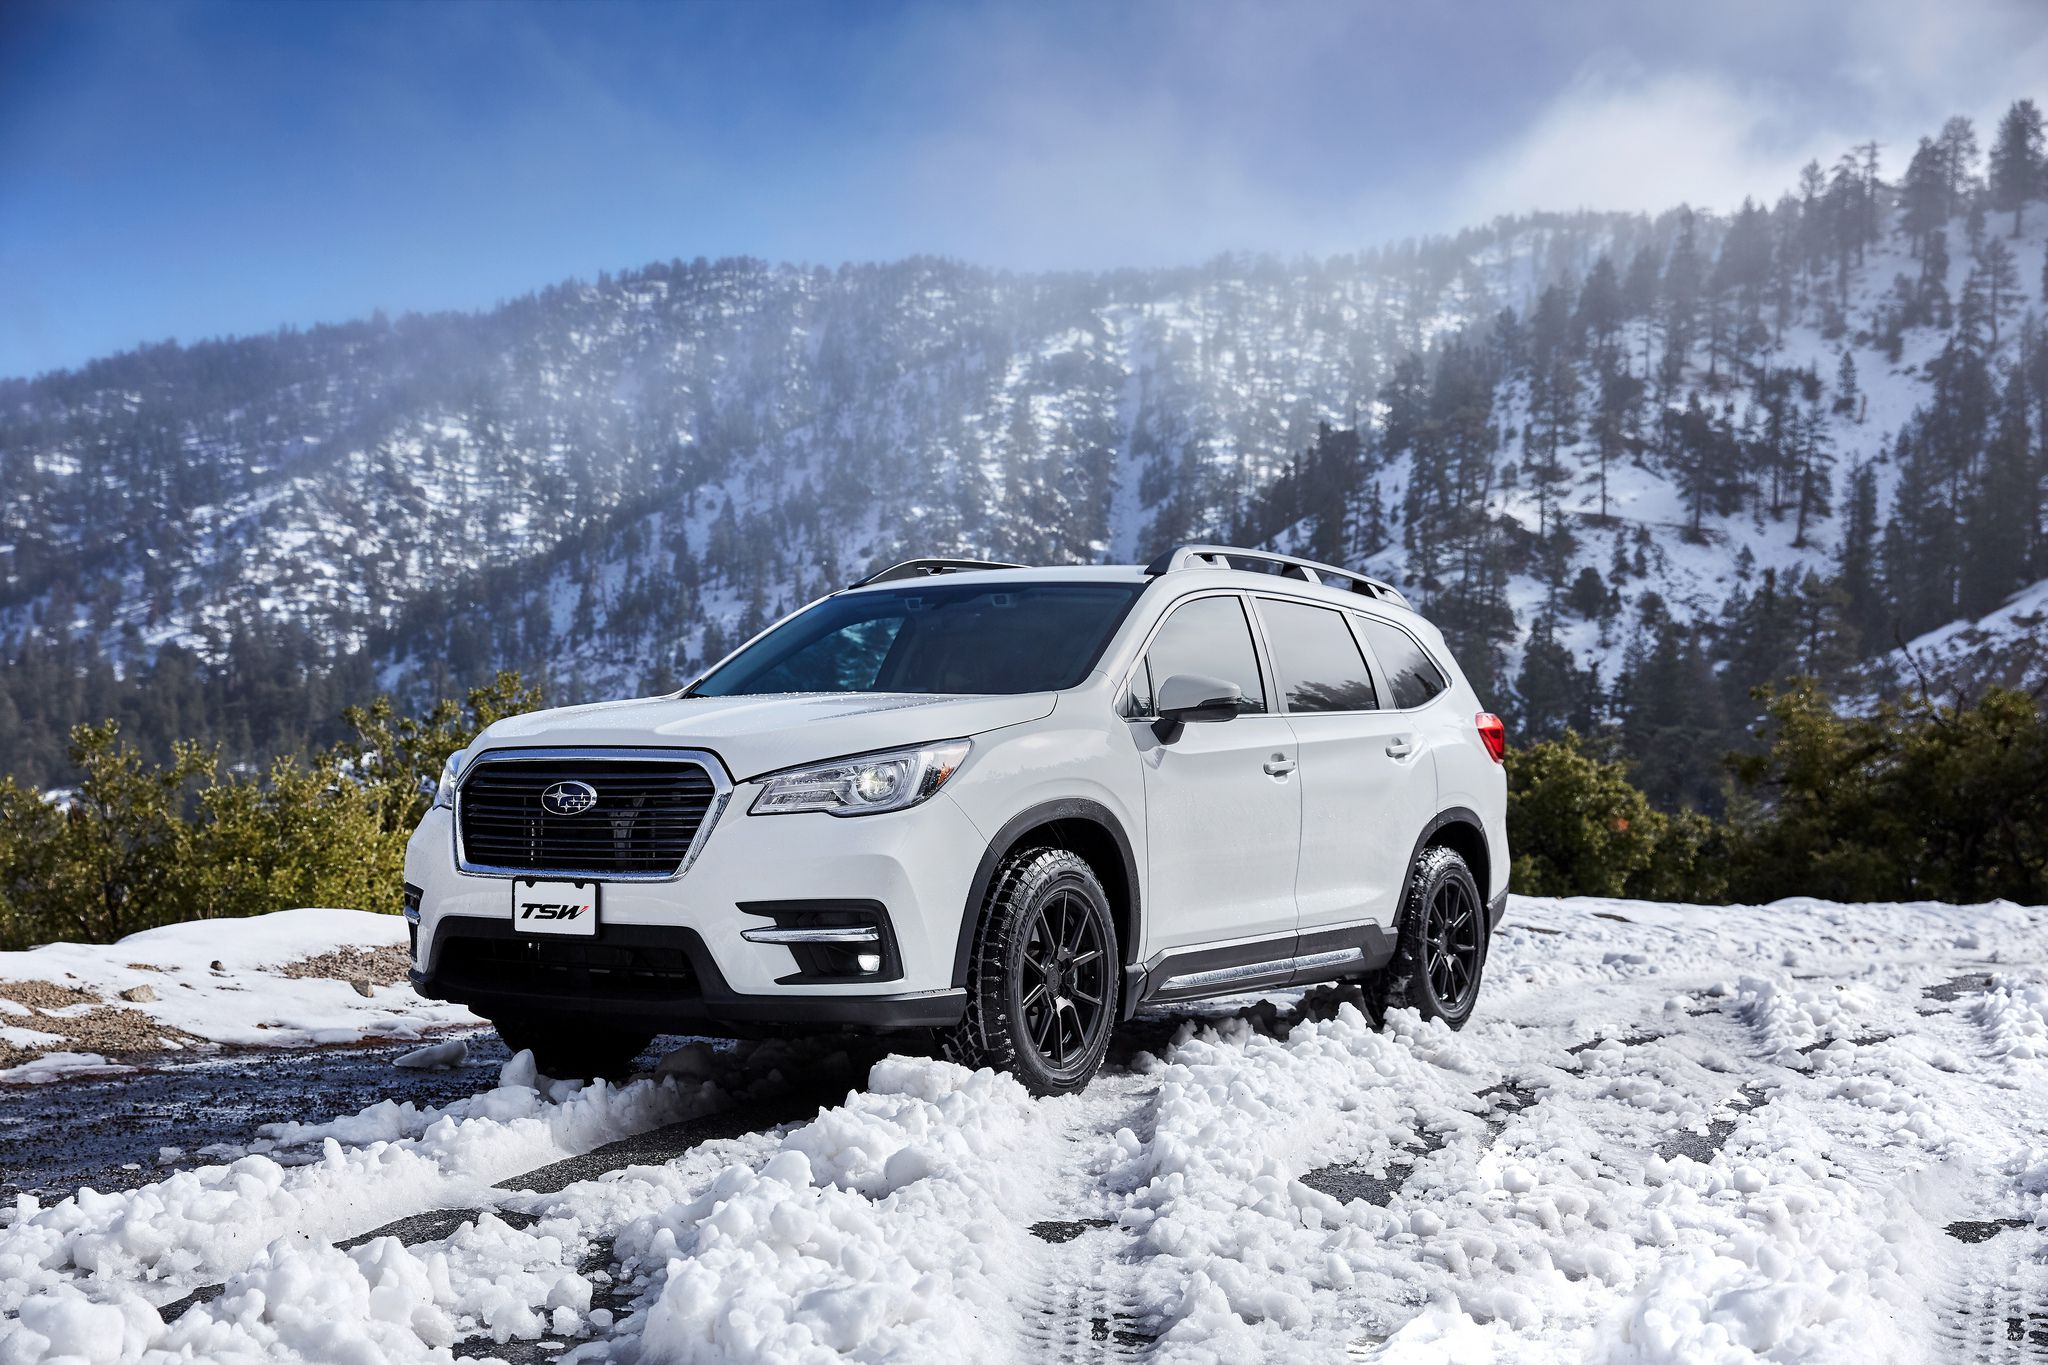 Black And White Wallpaper Hd 5 Subaru Ascent 2019 Images Hd